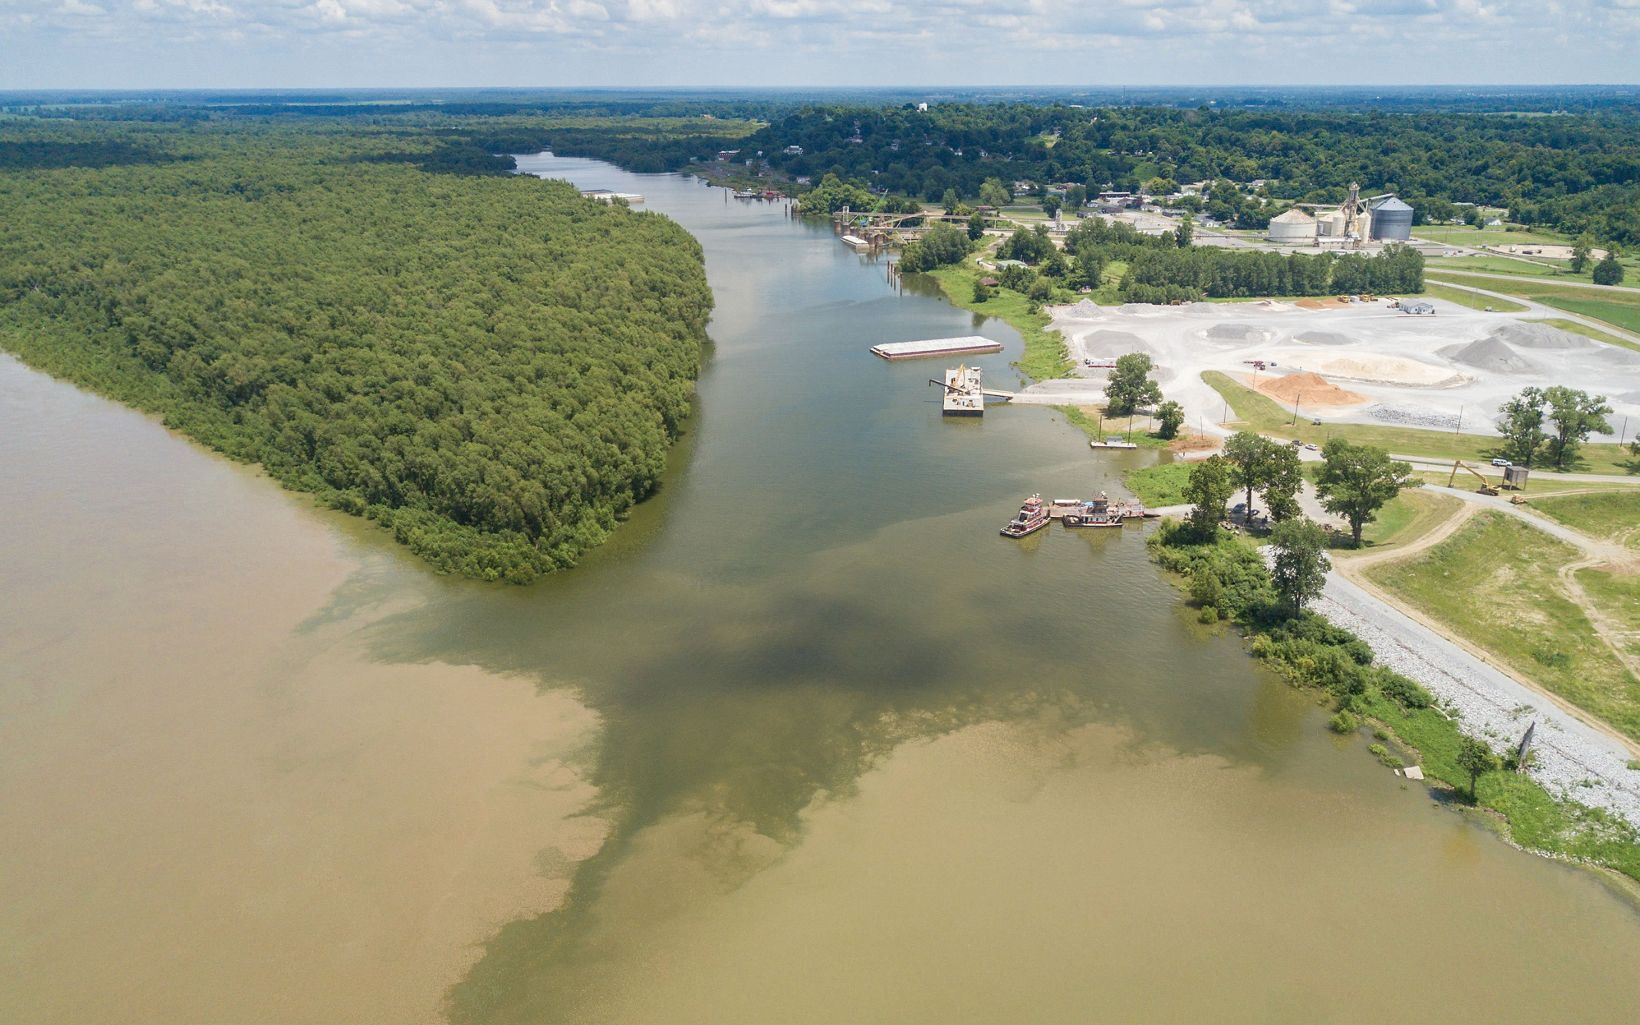 Confluence of Mississippi and Tennessee rivers